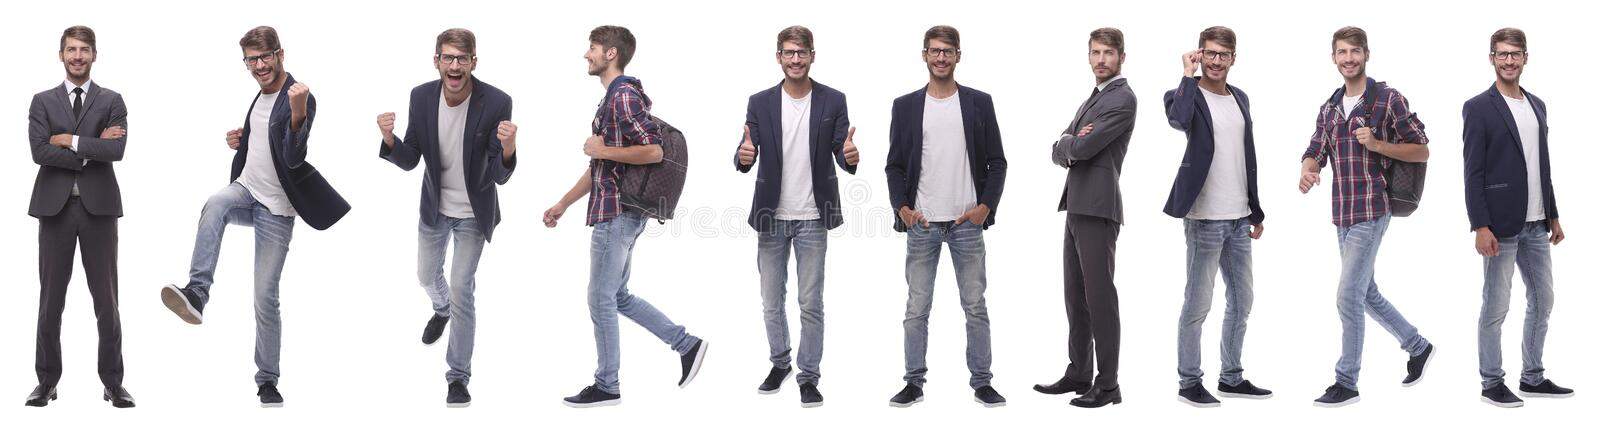 Panoramic collage of self-motivated young man .isolated on white royalty free stock images